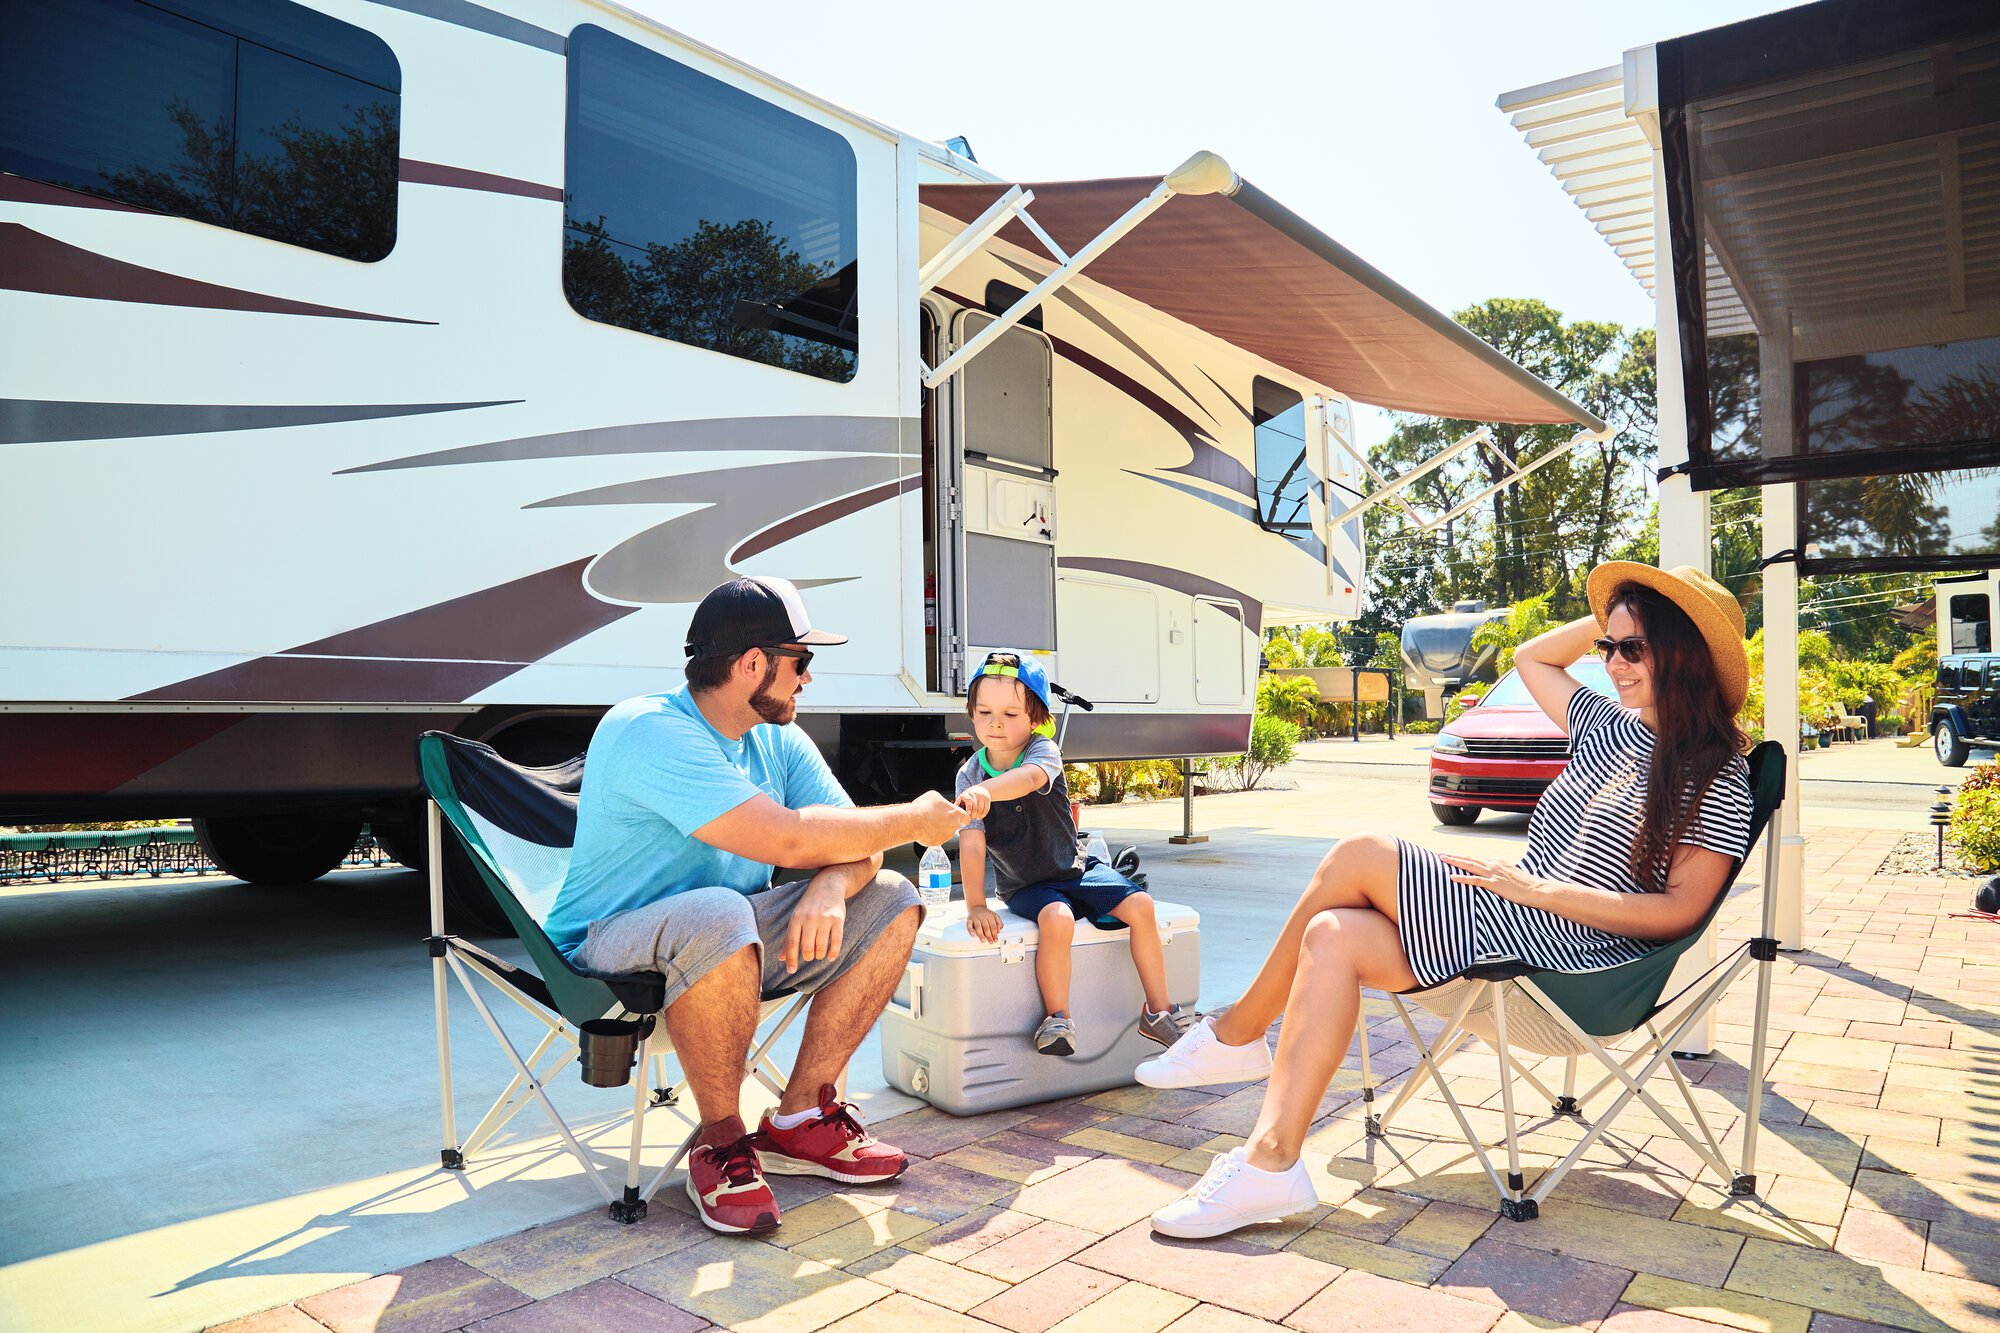 Mother,,Father,And,Son,Sitting,Near,Camping,Trailer,smiling.woman,,Men,,Kid